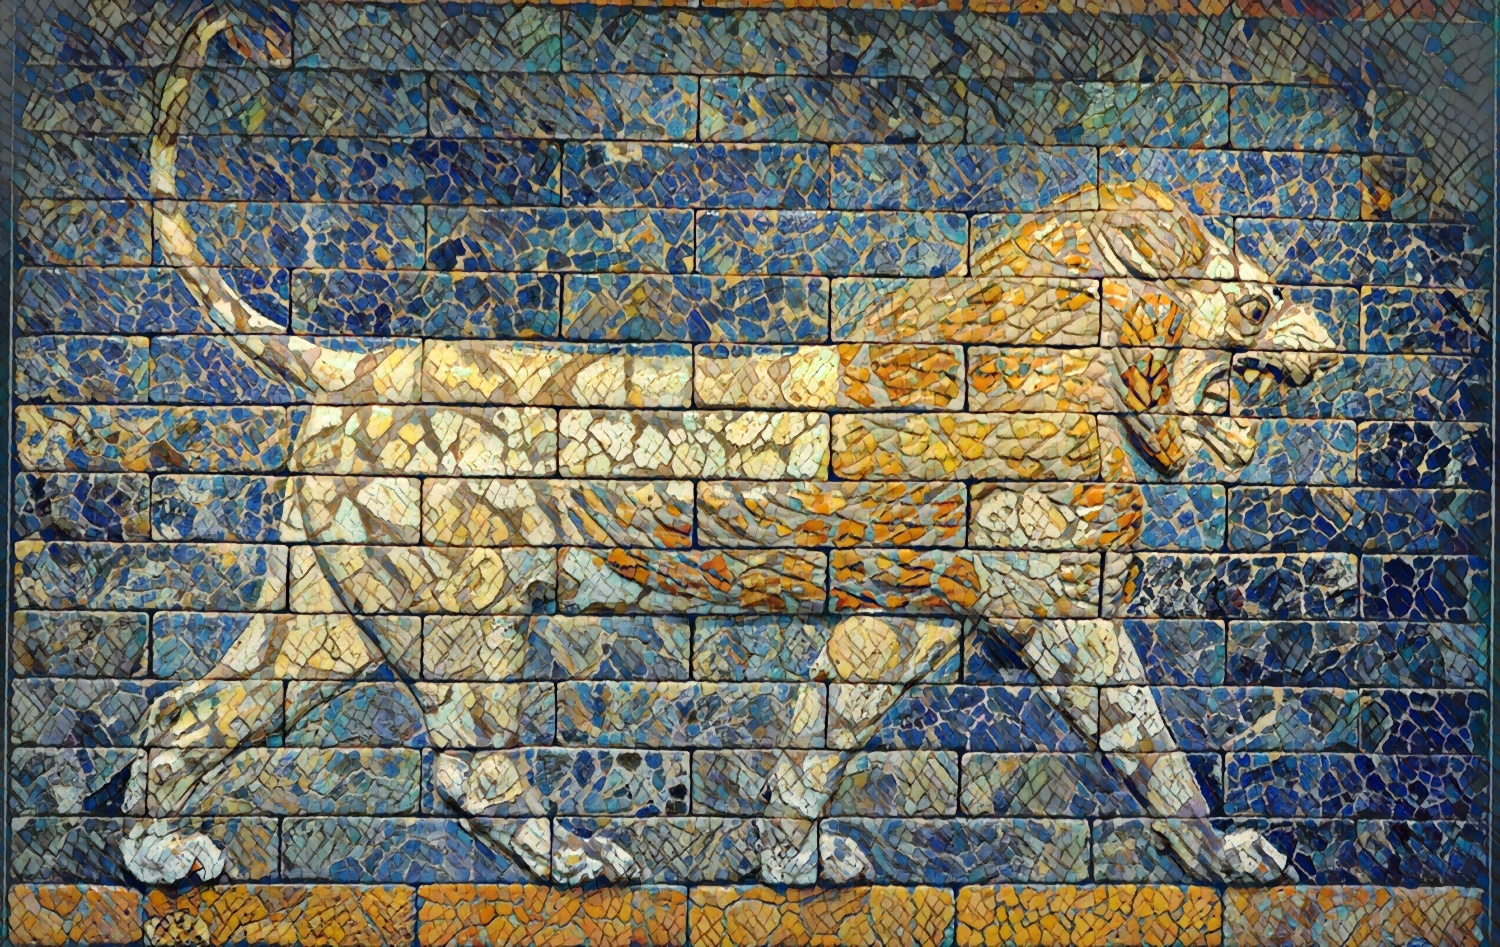 Lion in brick mosaic discovered in Babylon